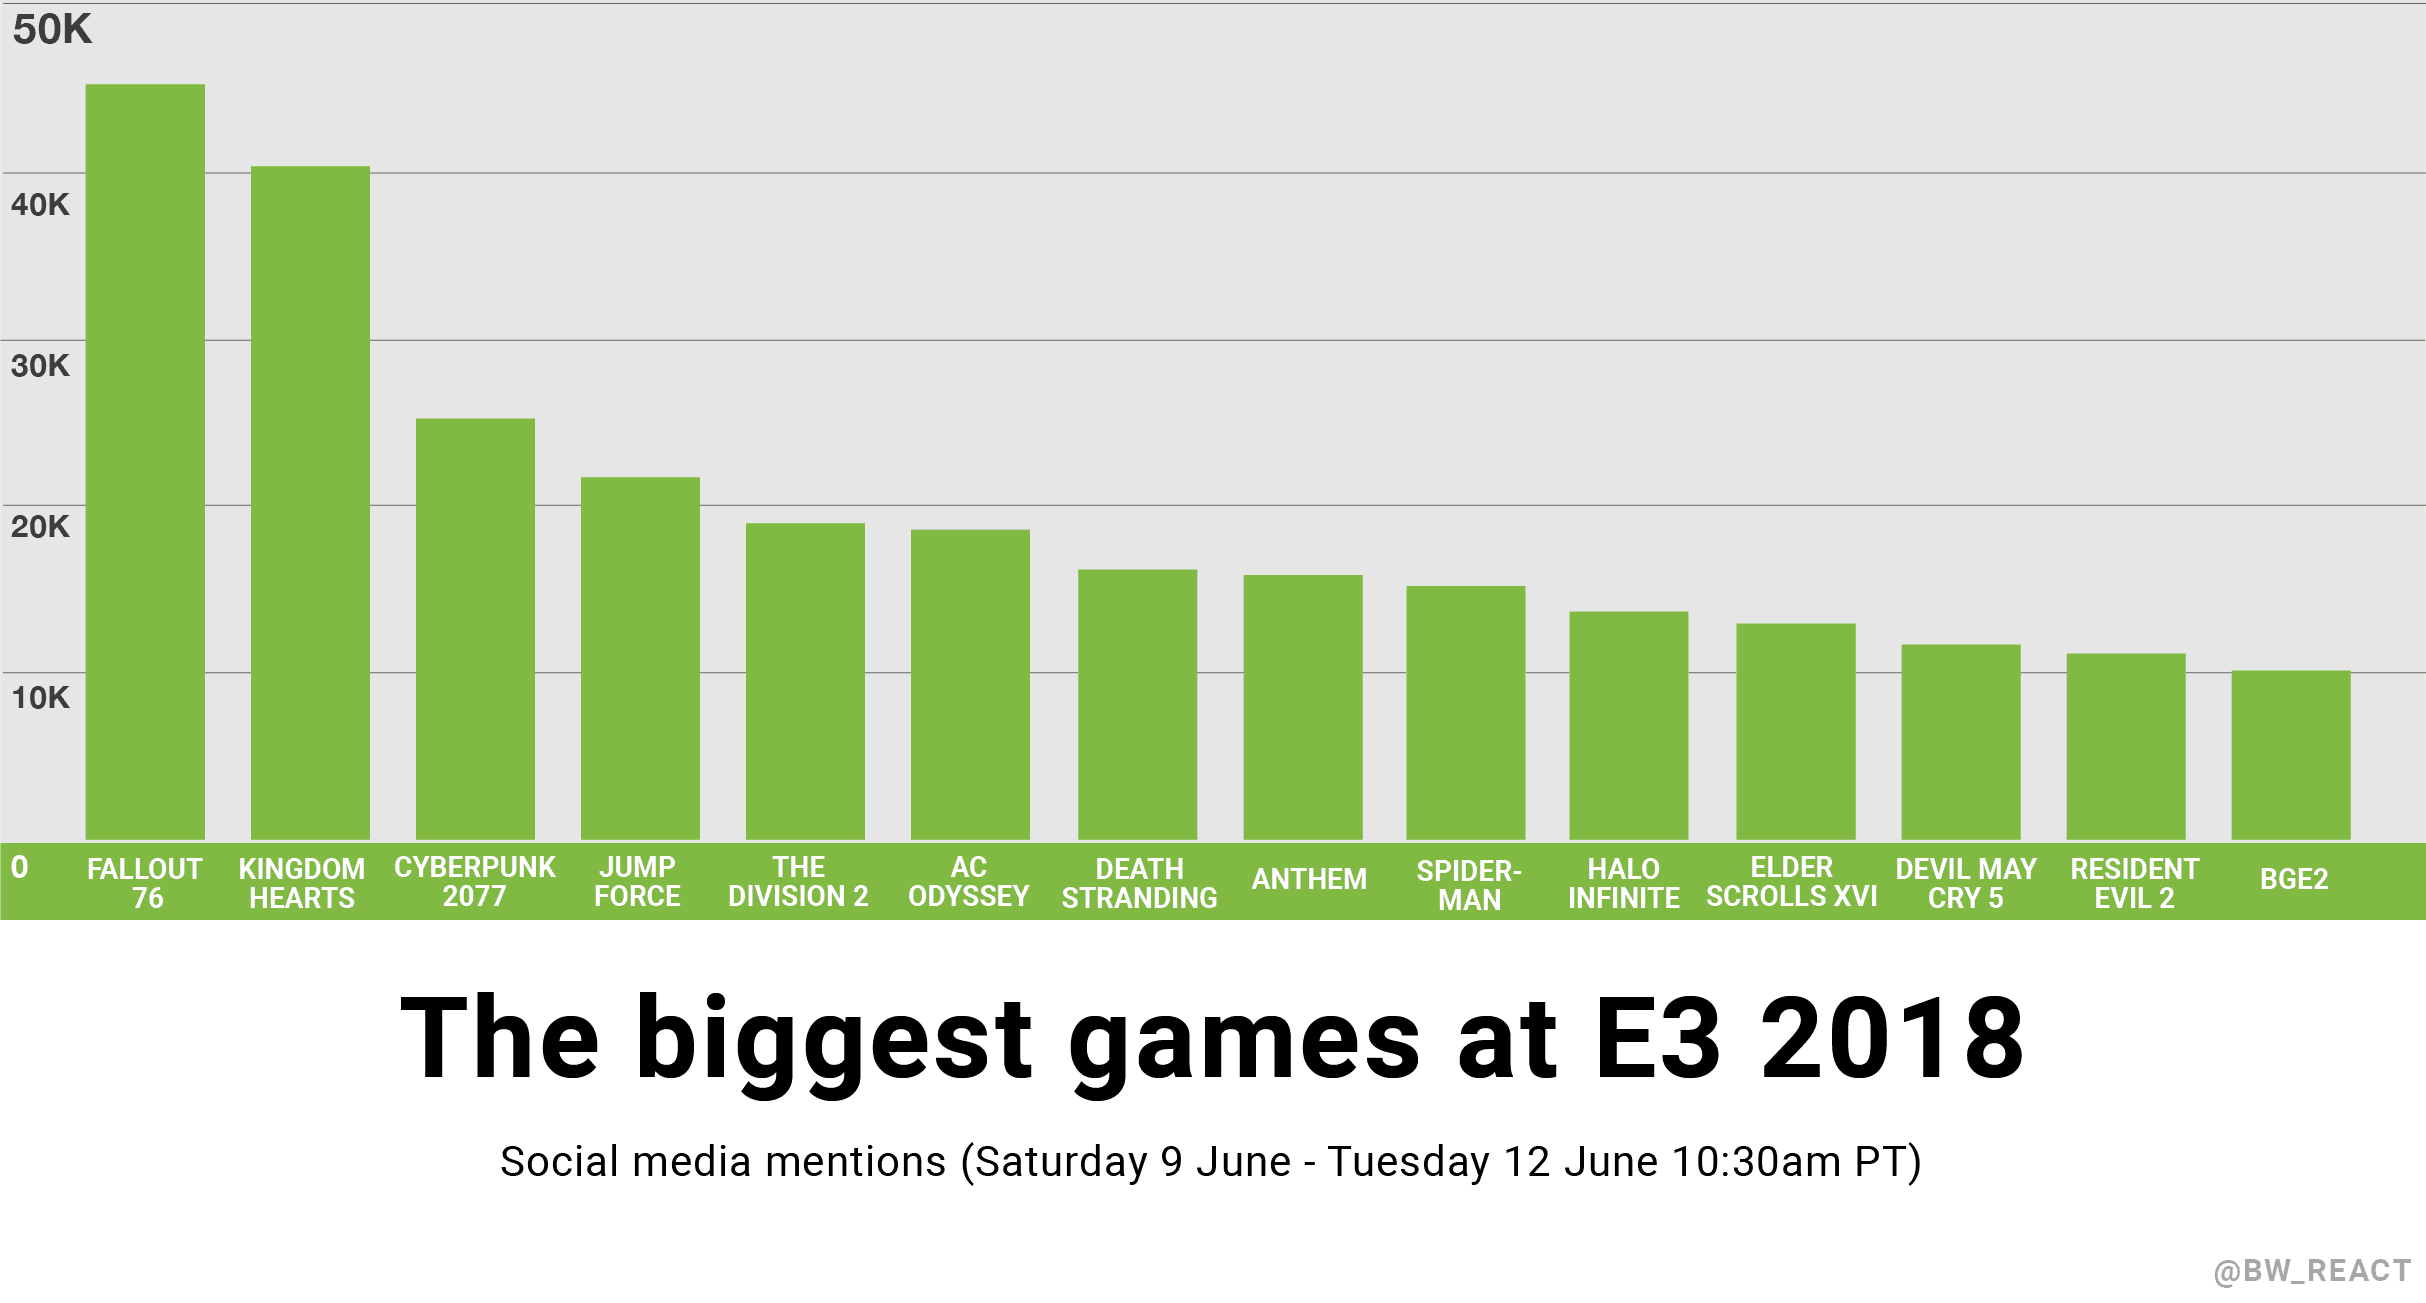 Biggest games at E3 2018